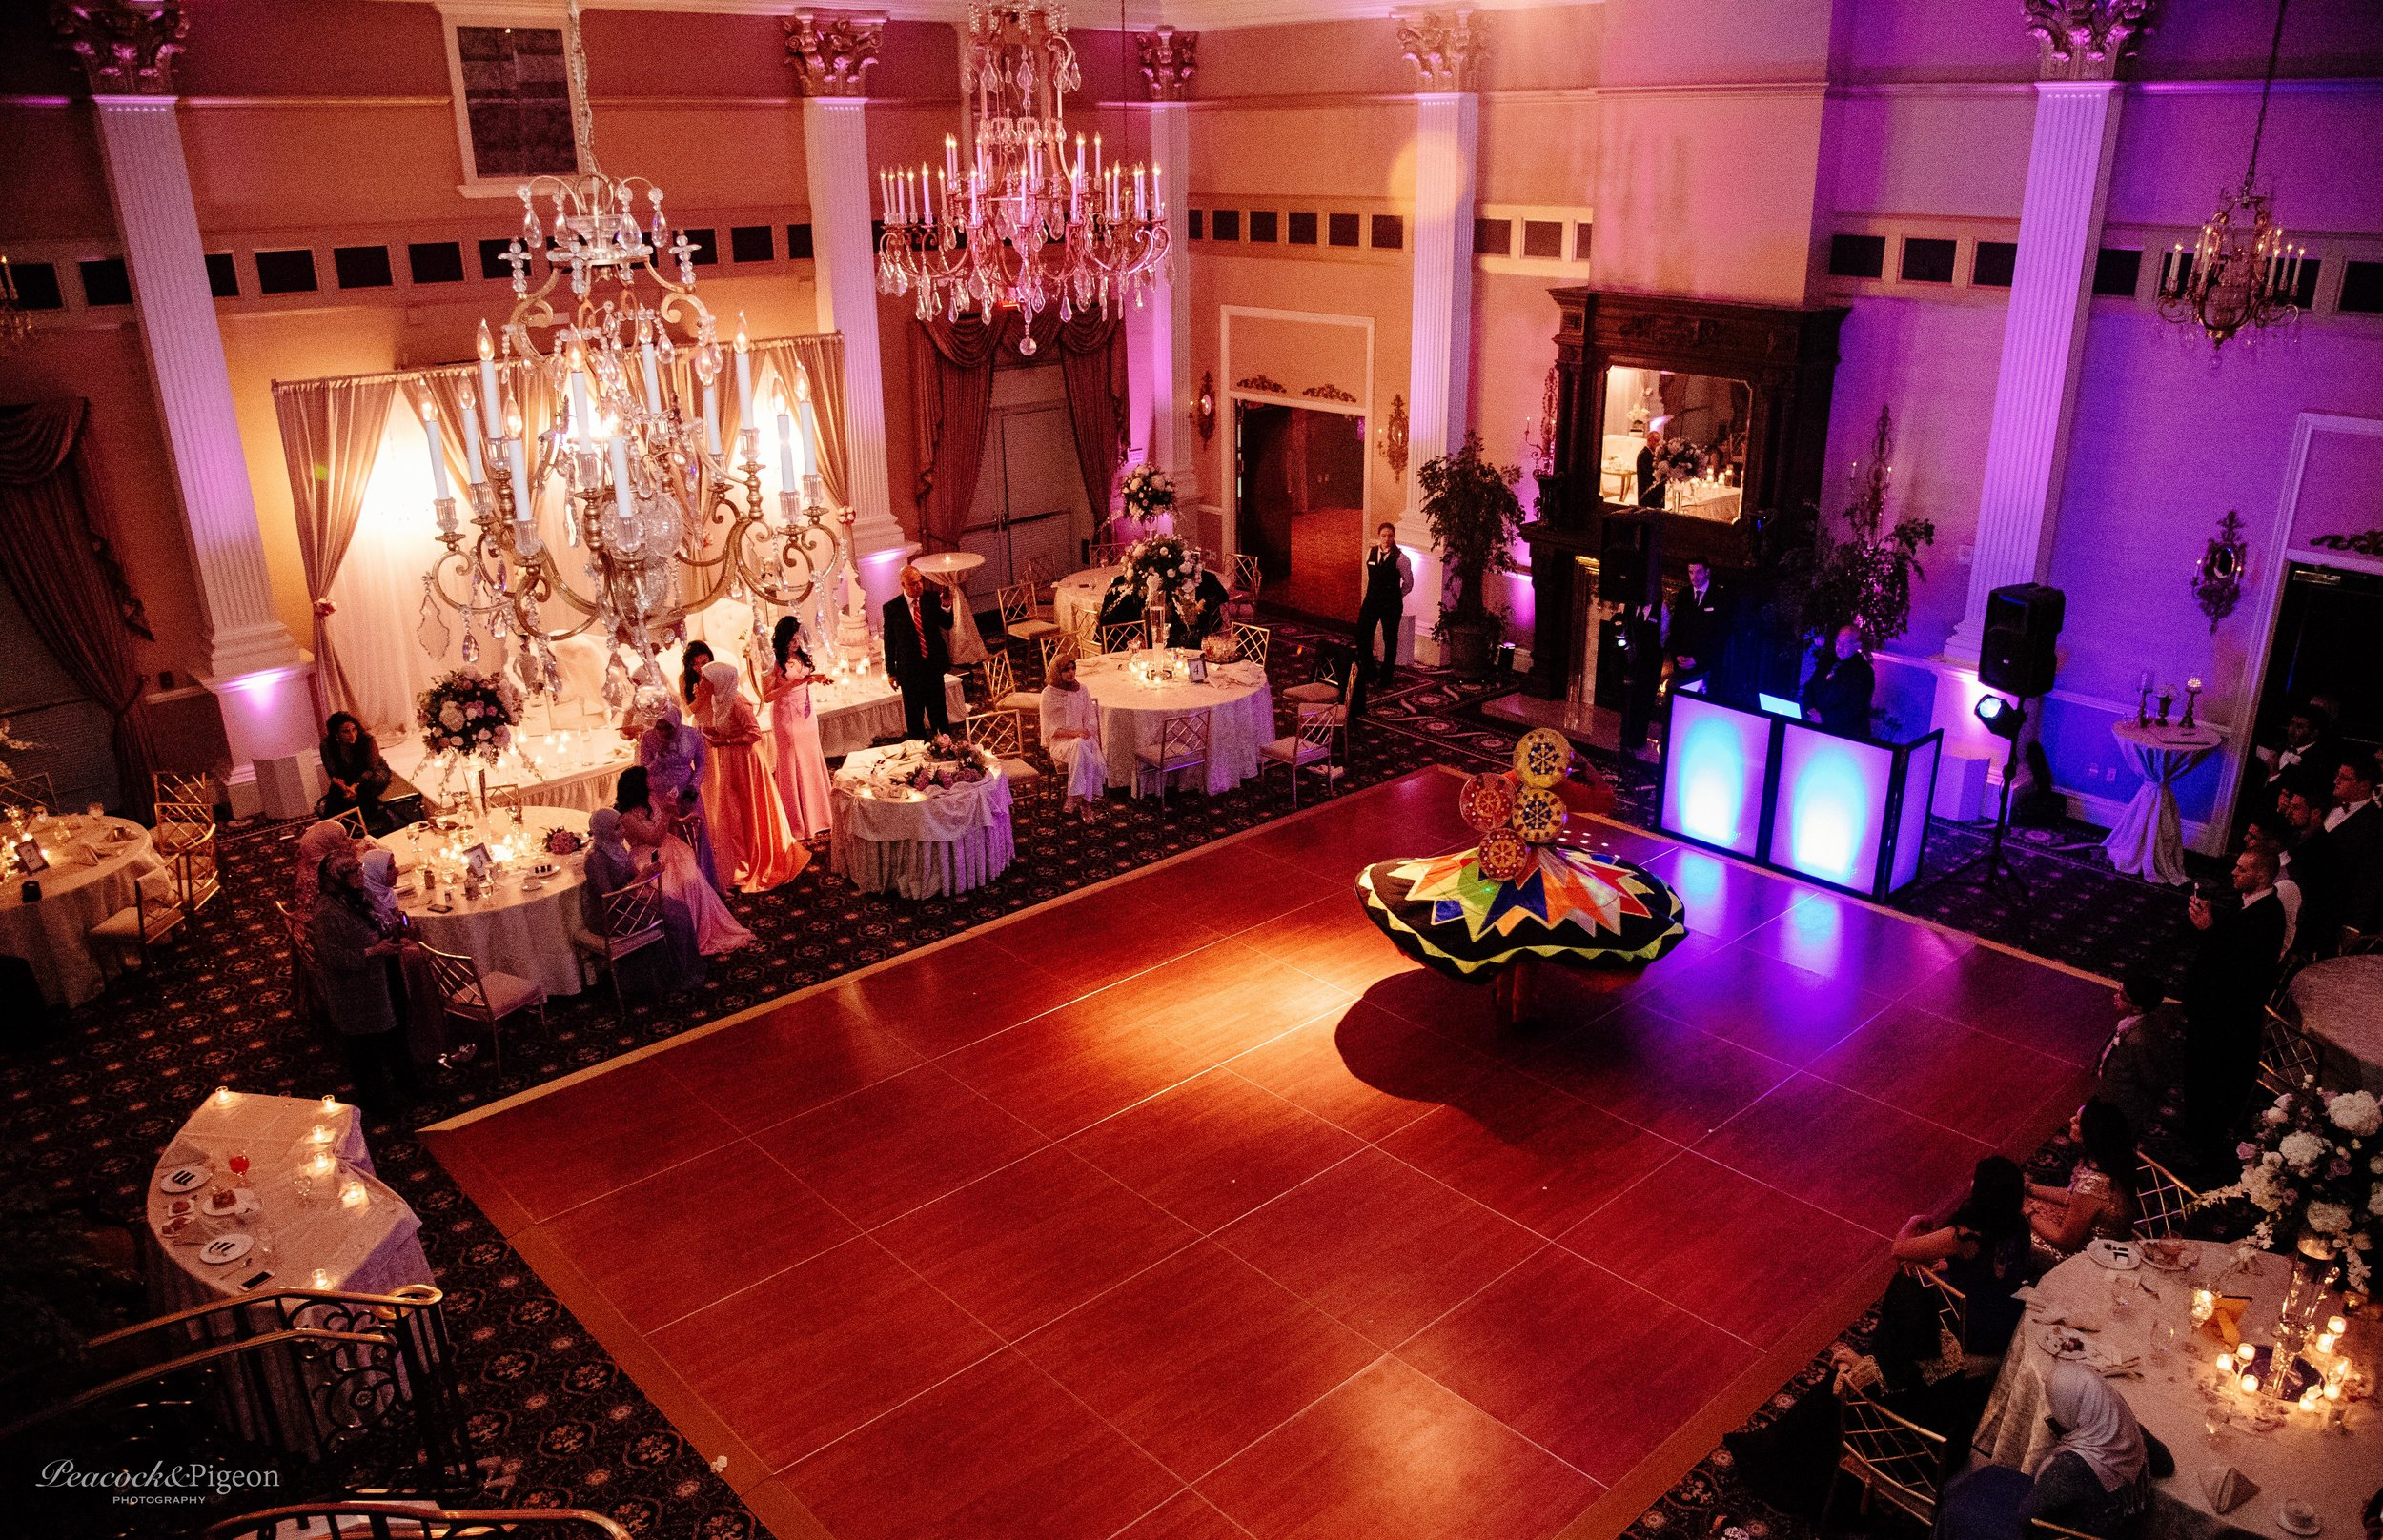 The_Wedding_of_Radwa_and_Kareem_at_Somerset_Palace_Part_Twenty_Egyptian_Dancing_Watermarked-9.jpg